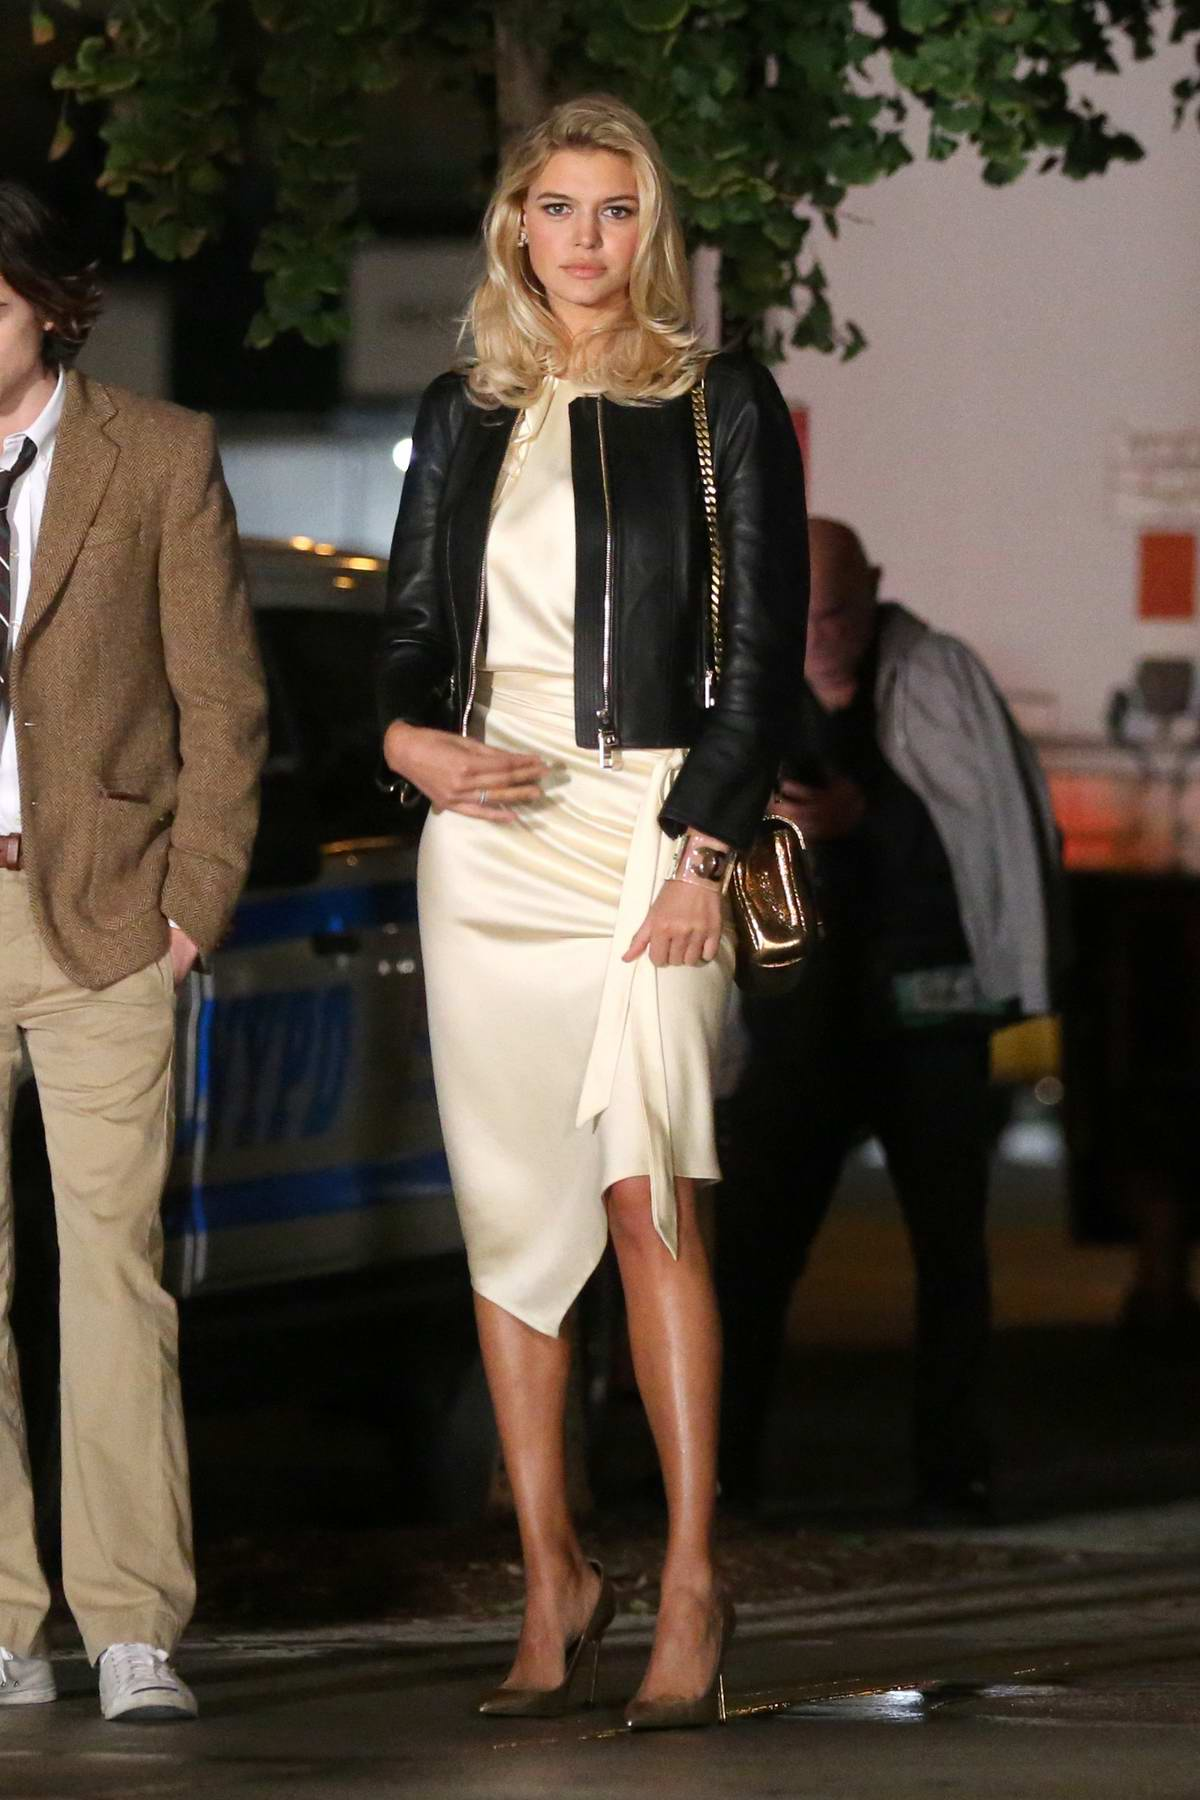 Kelly Rohrbach filming a scene for the untitled Woody Allen movie in Madison Avenue, Manhattan, New York City